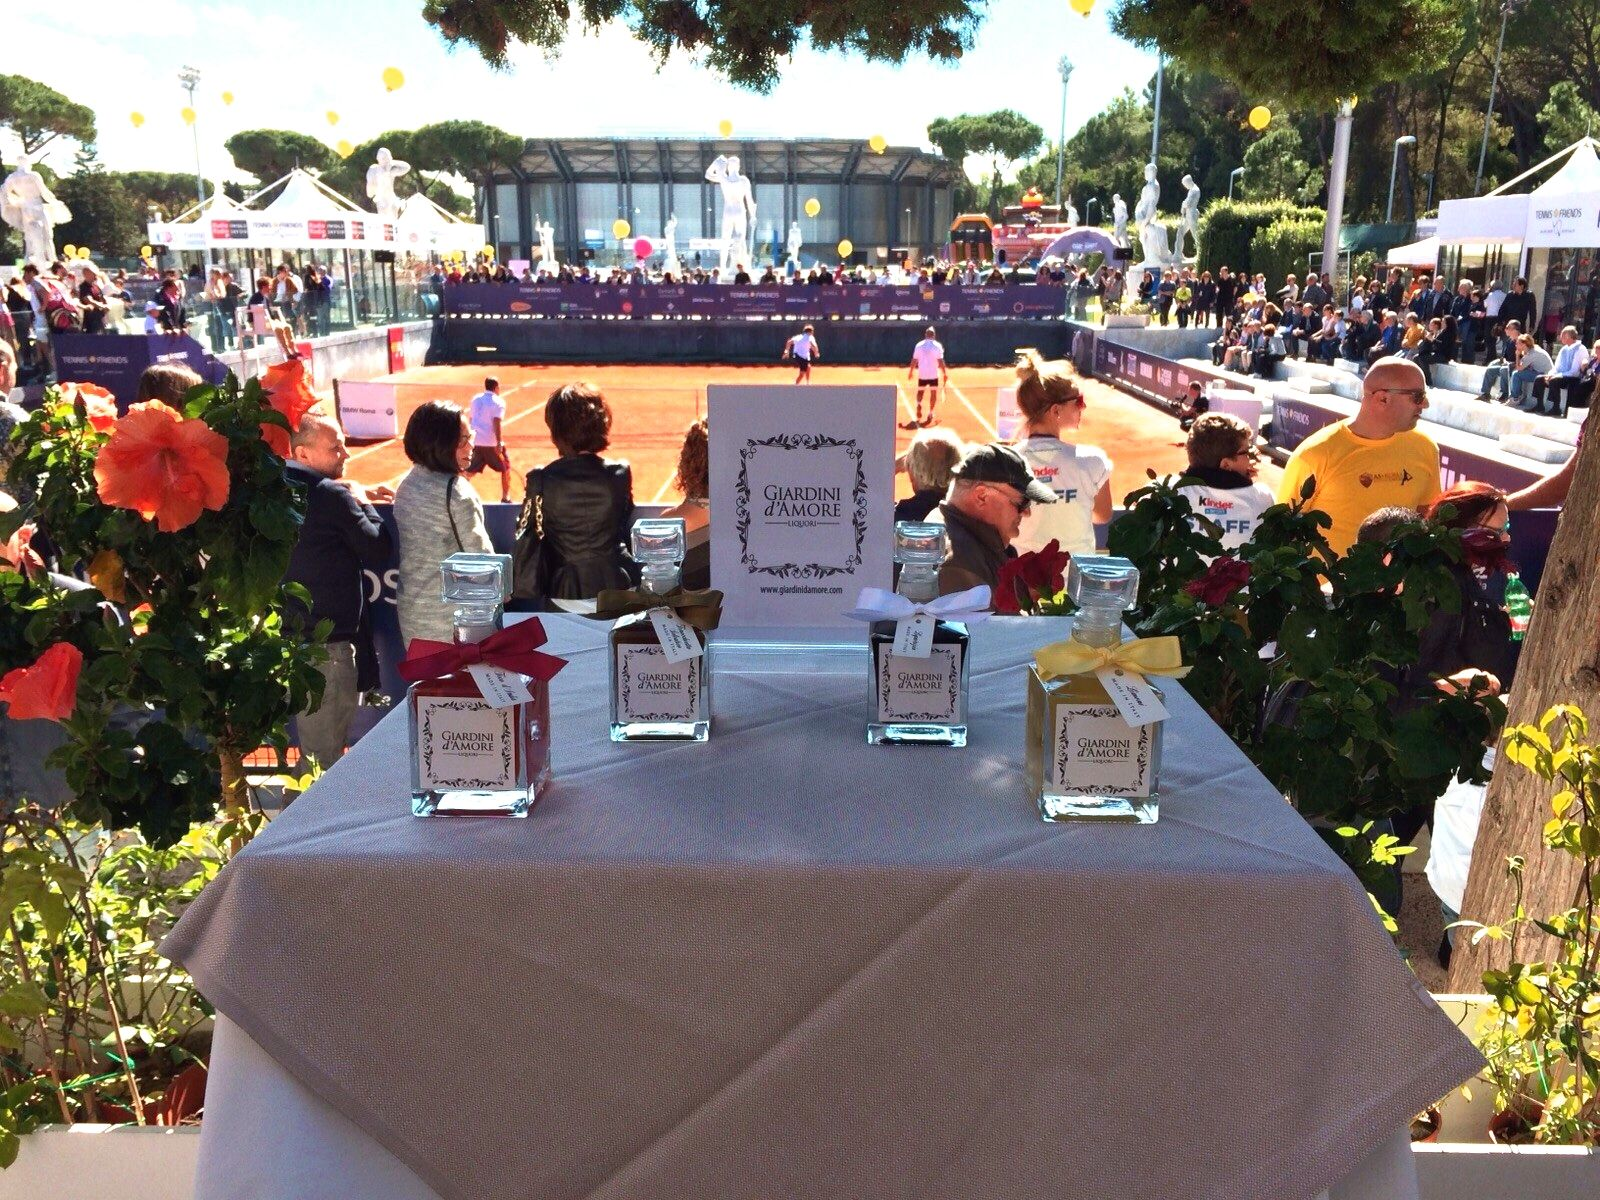 Grande privilegio ed onore per Giardini d'Amore essere presenti a ‪Roma‬ alla seconda giornata del Tennis and Friends - Great privilege and honor to be present in Rome at the second day of Tennis & Friends - 11 Oct 2015